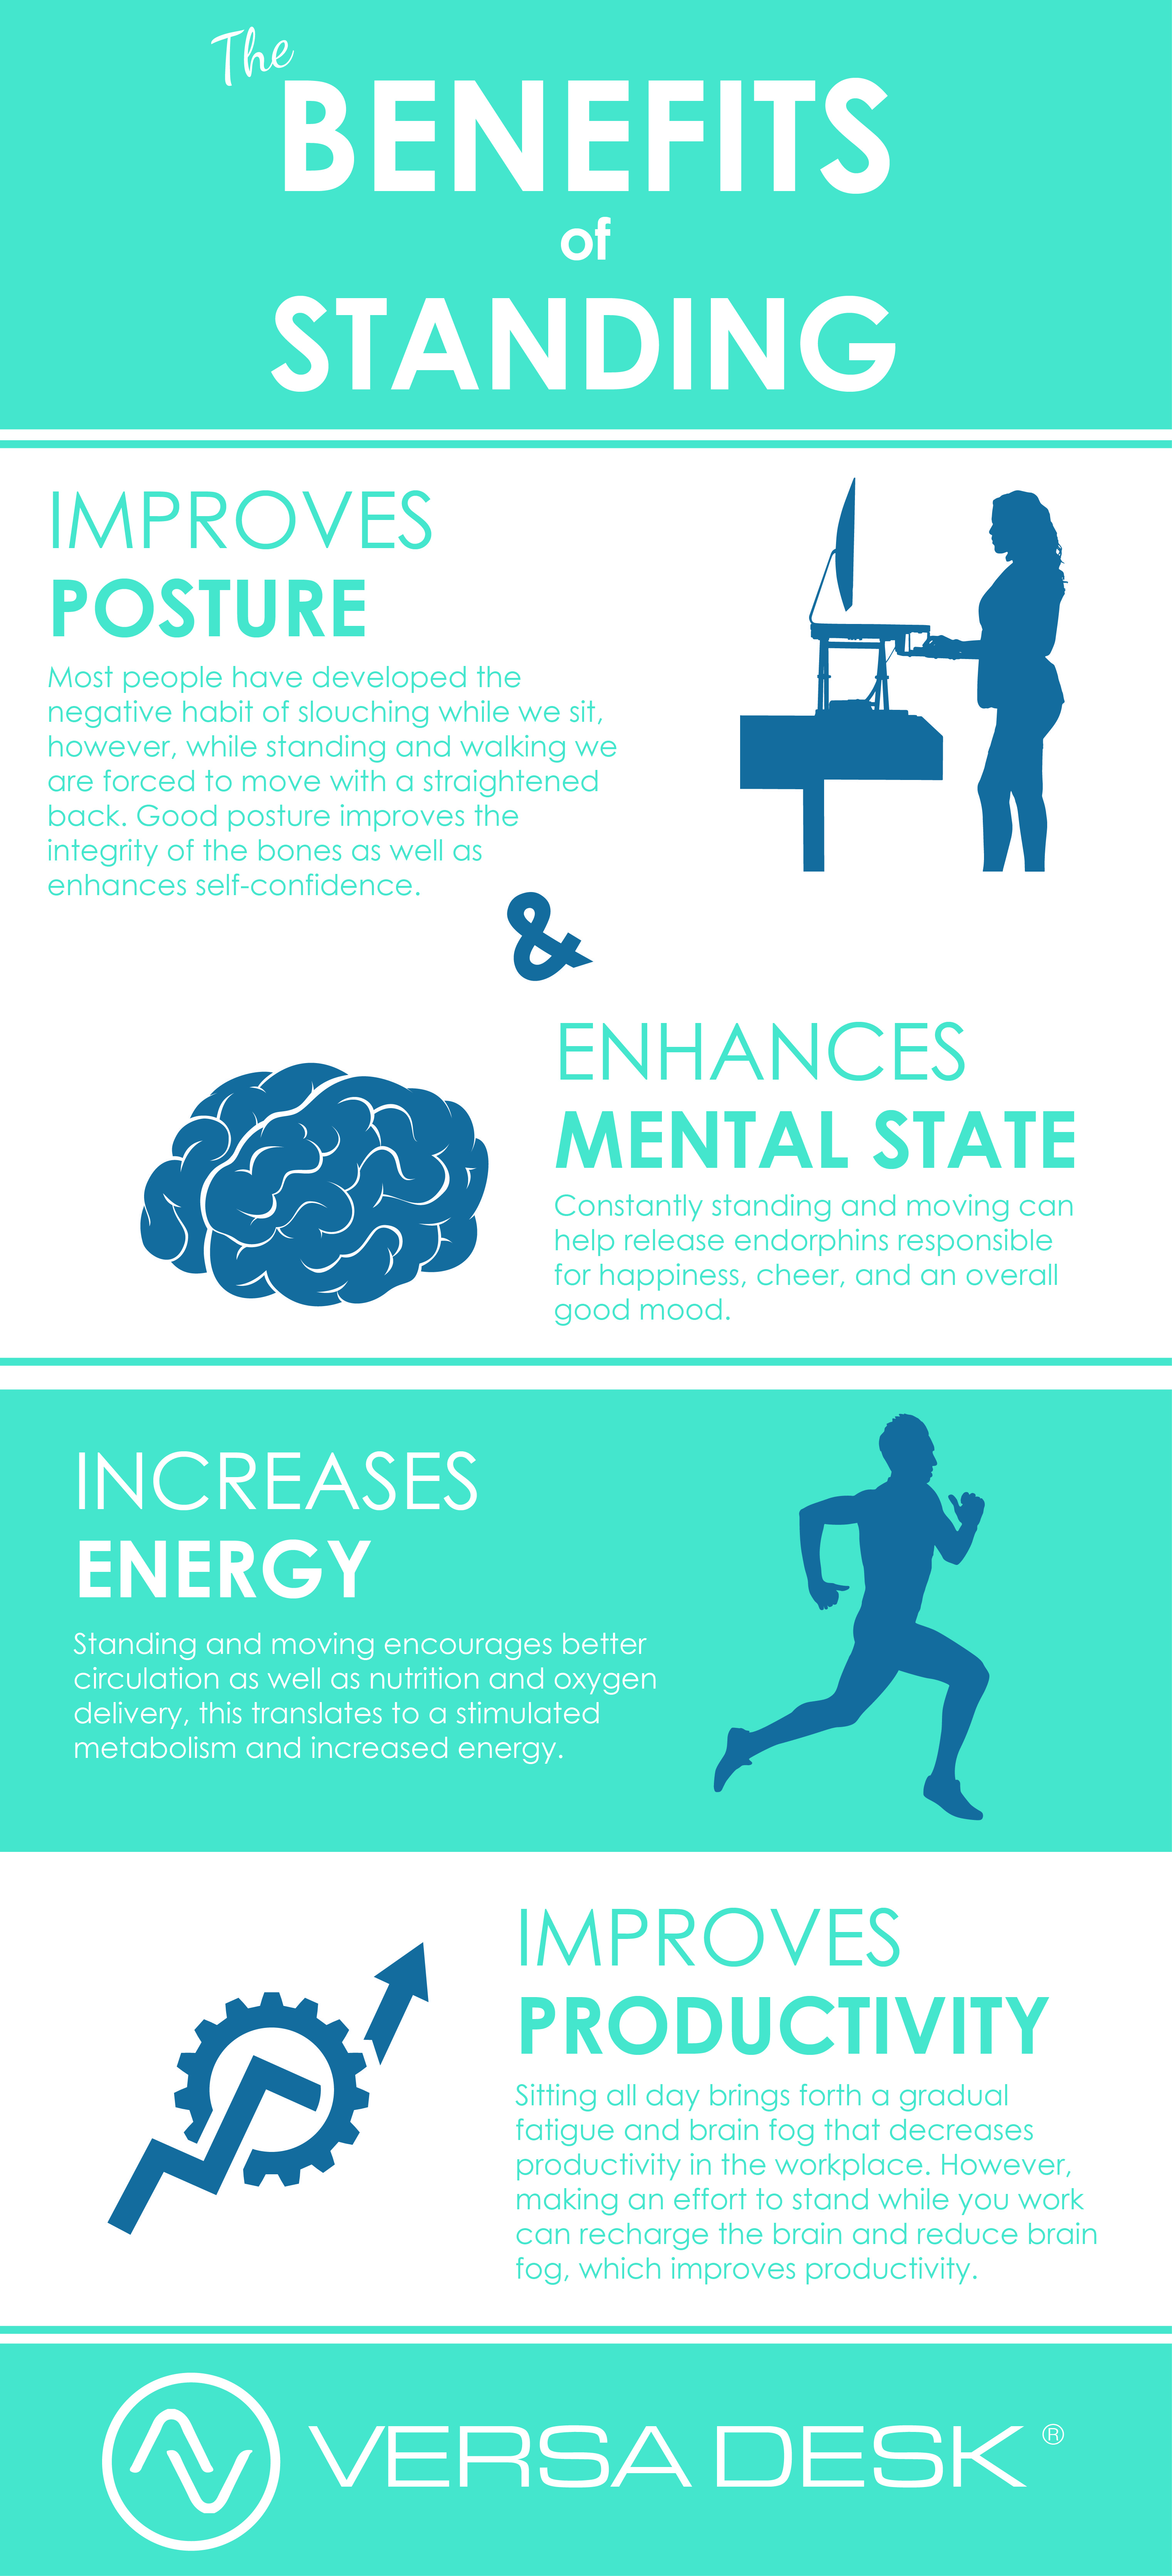 Some Benefits Of Using A Standing Desk Although This Is Just A Few The Benefits Are Endless Standing Desk Benefits Standing Desk Posture Standing Desk